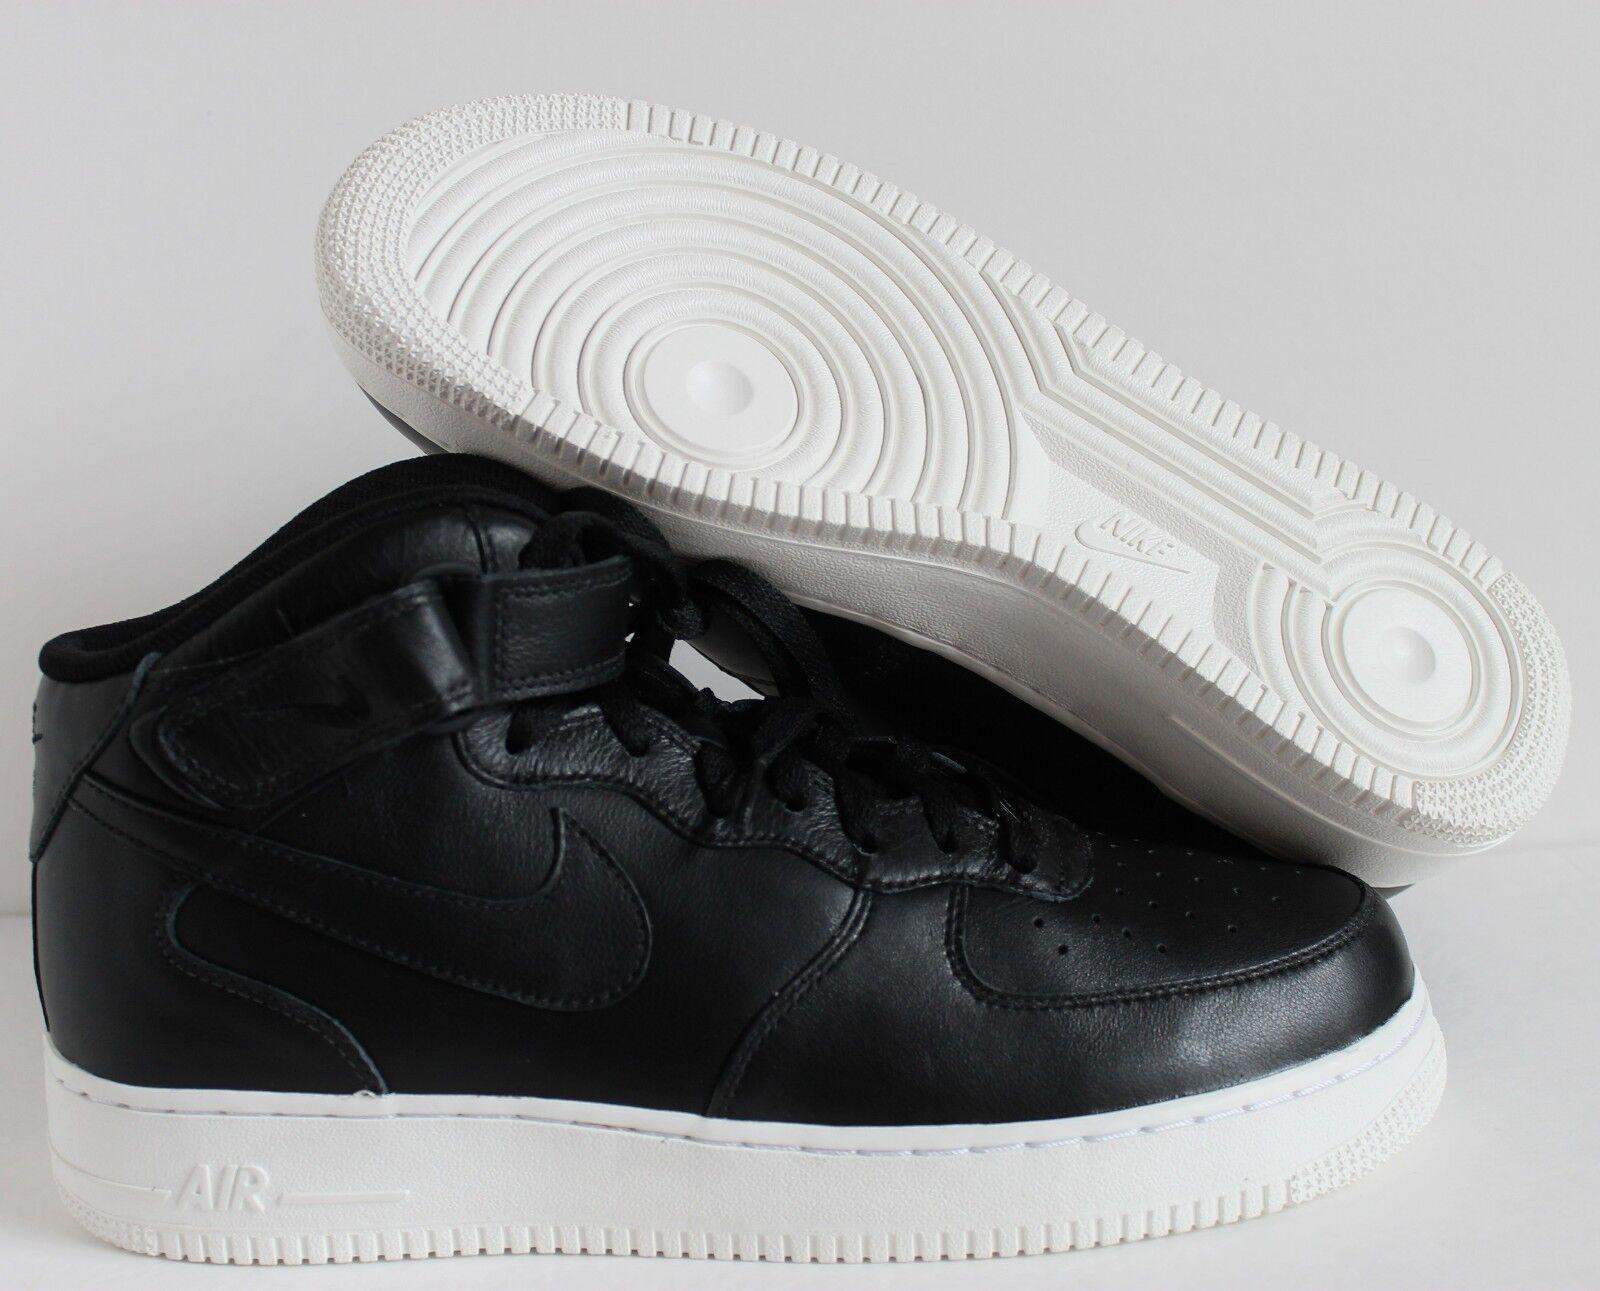 Nike alta Hombres Force 1 alta Nike ID Negro Air-Blanco [808788-991] d183dd